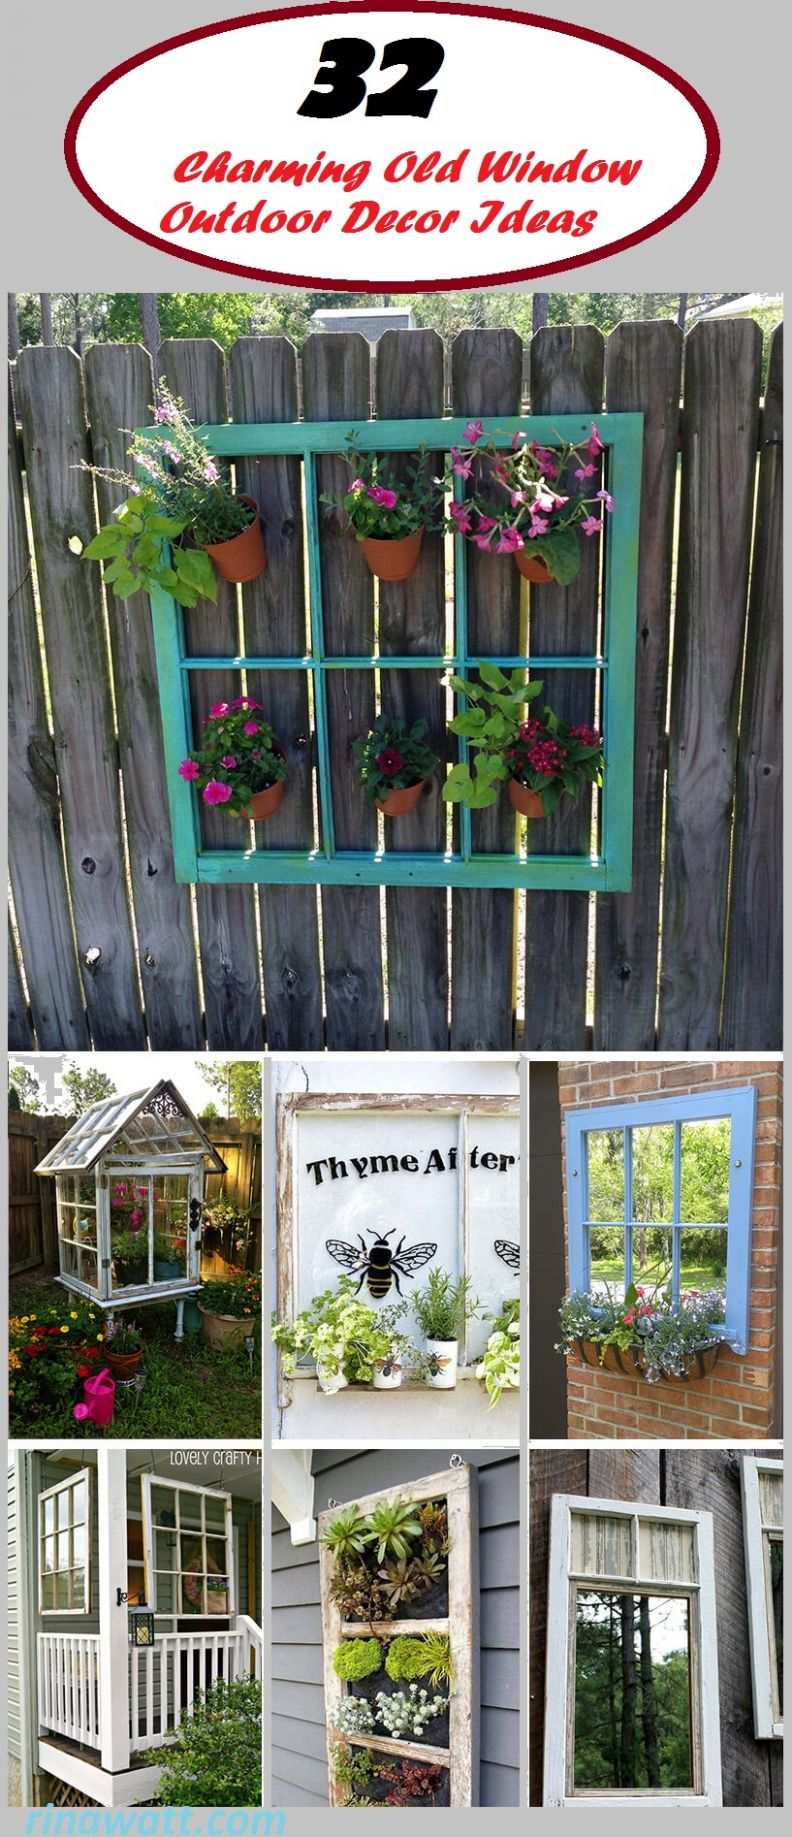 9 Fun and Inspiring Old Window Outdoor Decor Ideas to Make Your ...